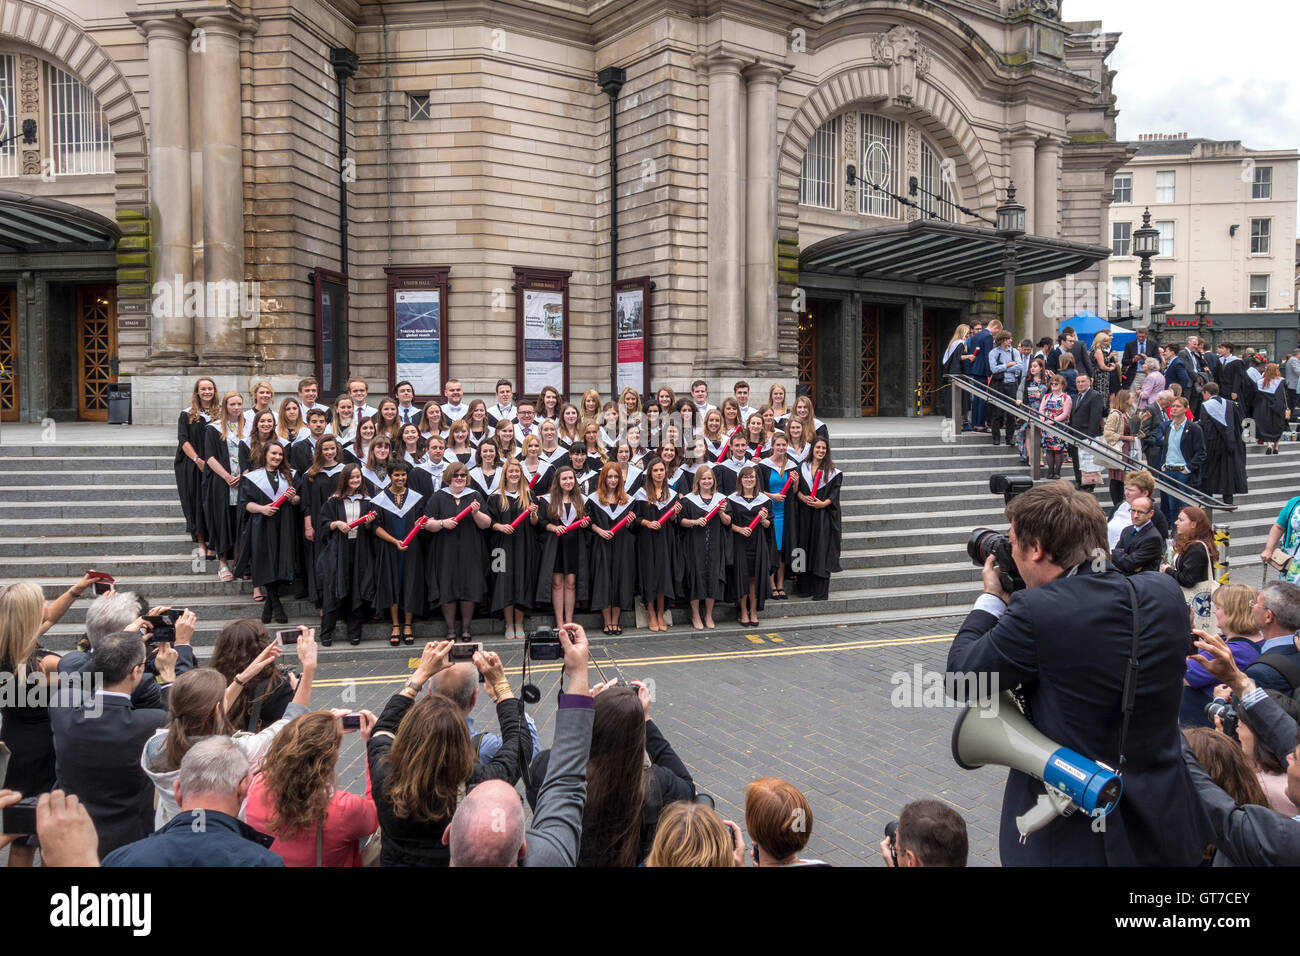 https://c7.alamy.com/comp/GT7CEY/edinburgh-university-graduation-day-family-parents-and-official-photographer-GT7CEY.jpg